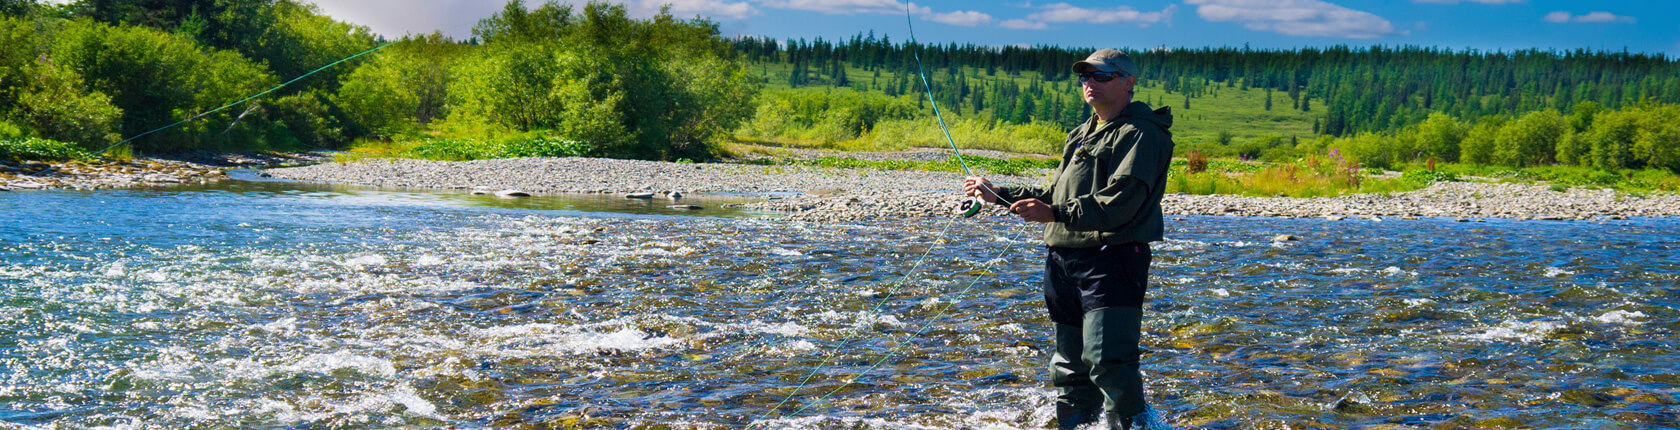 Fly Fishing River